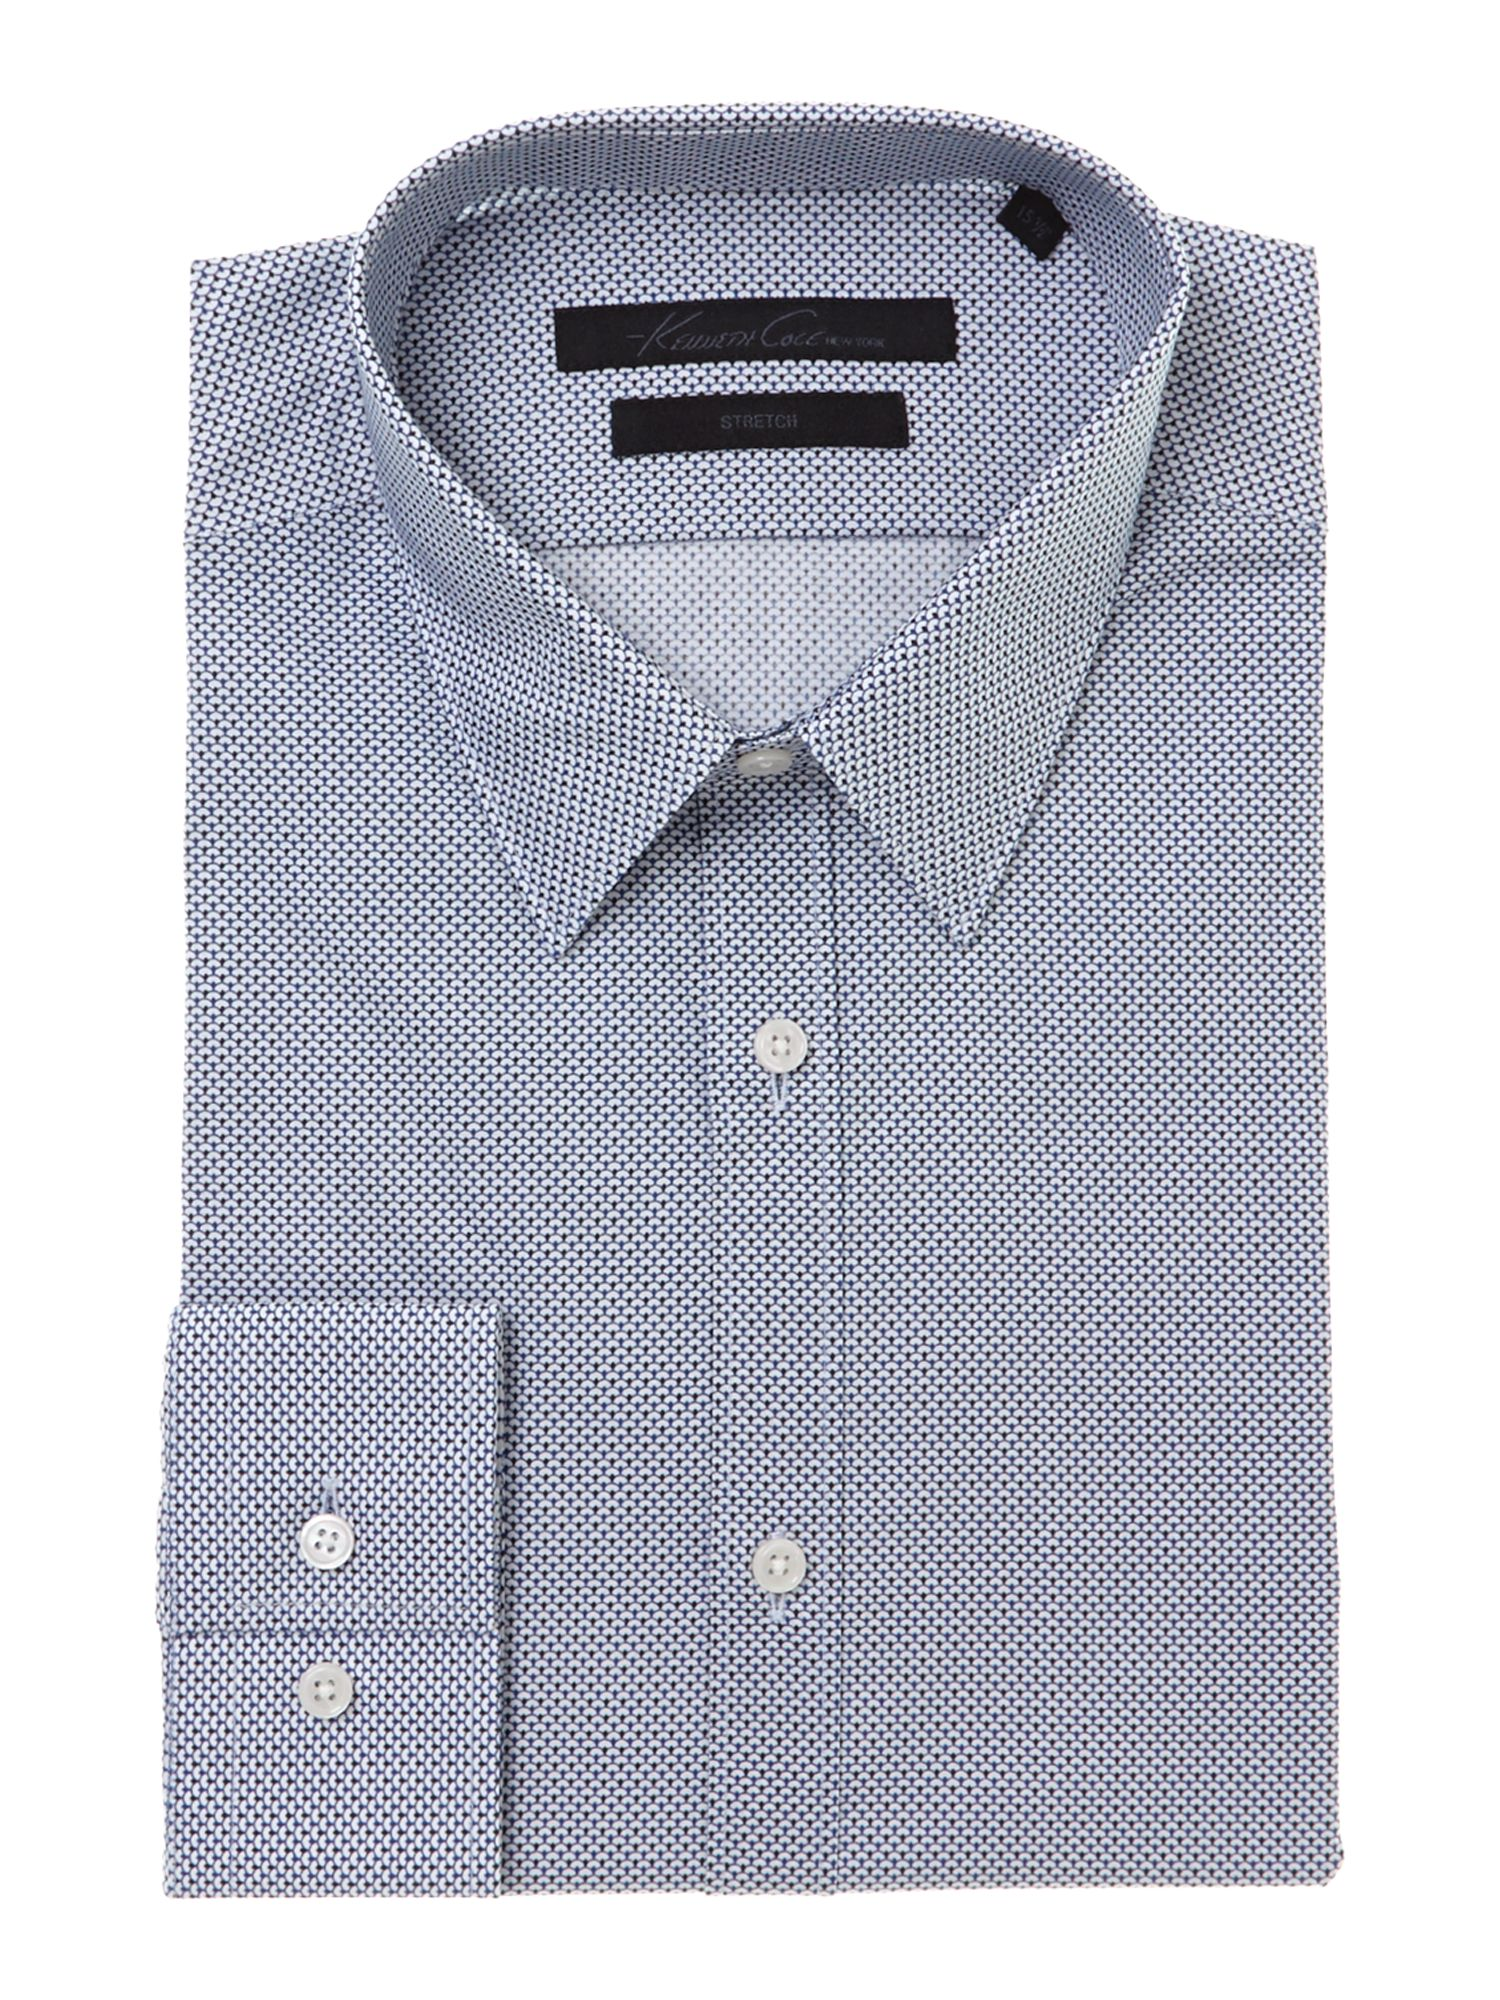 Hogan geo print single cuff stretch shirt